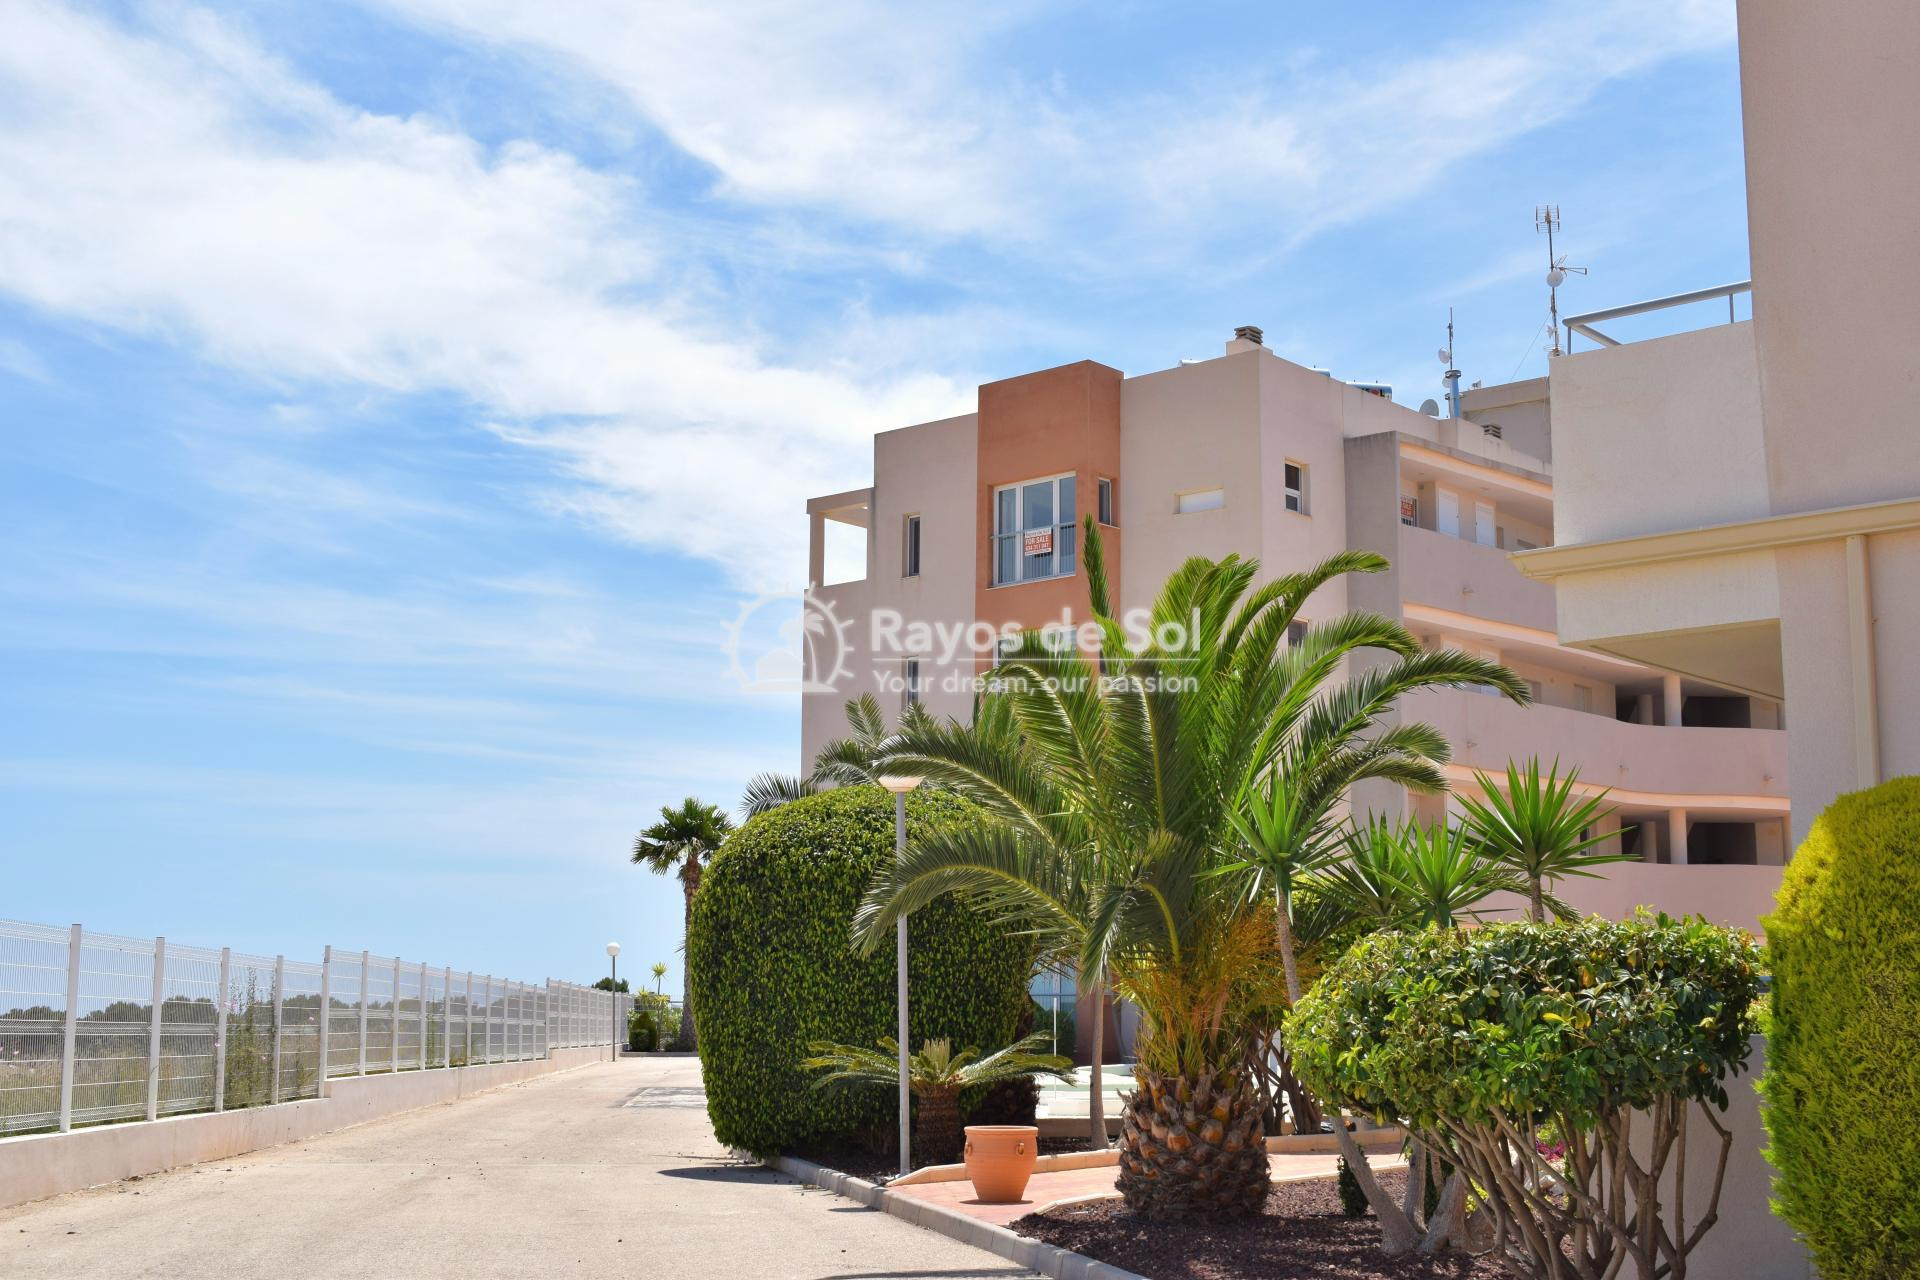 Penthouse with stunning views  in La Zenia, Orihuela Costa, Costa Blanca (VIRE0001) - 2